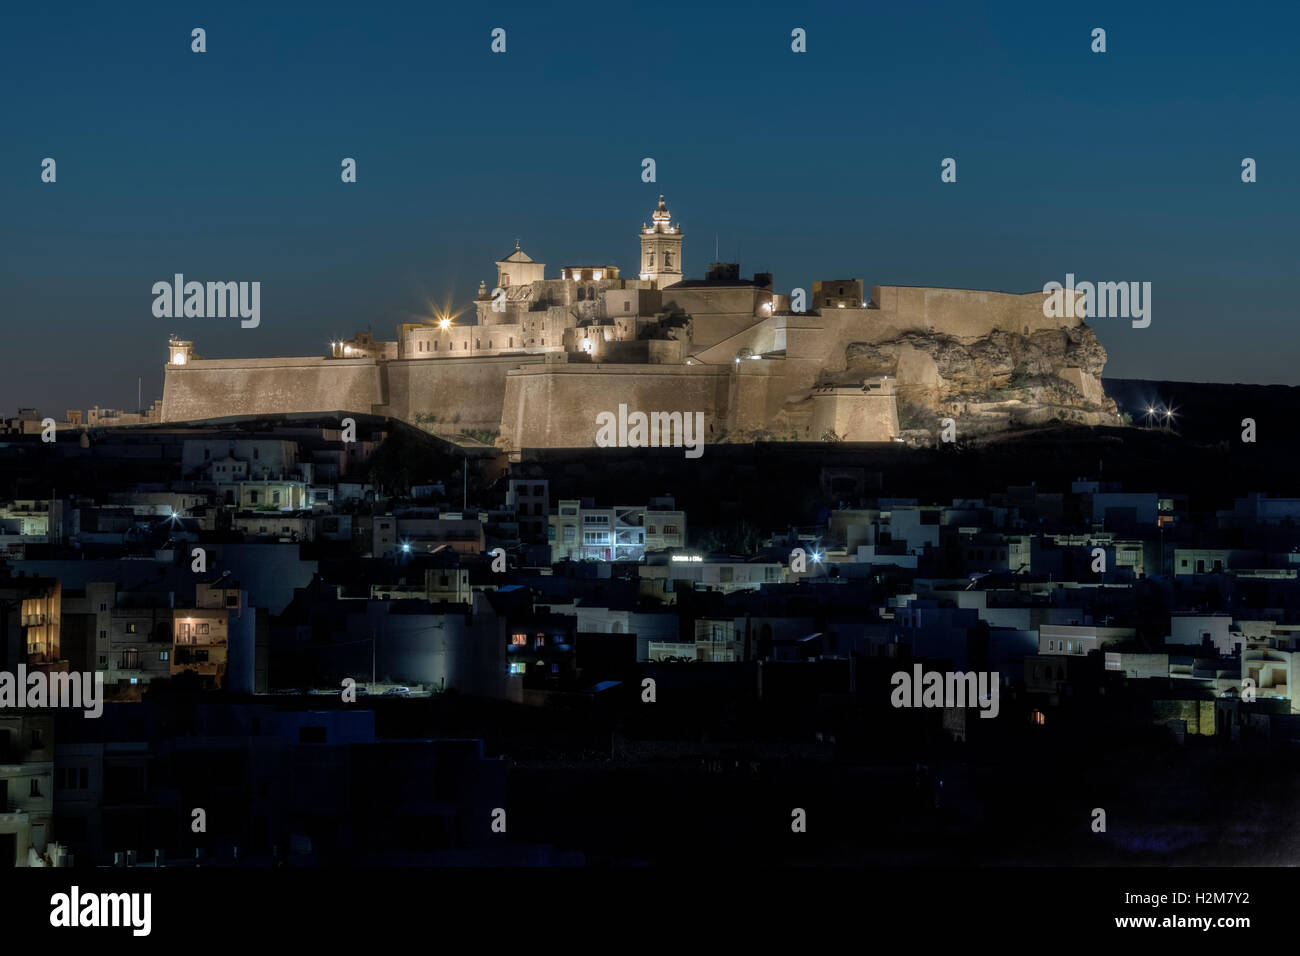 Cittadella at night, Victoria, Gozo, Malta - Stock Image